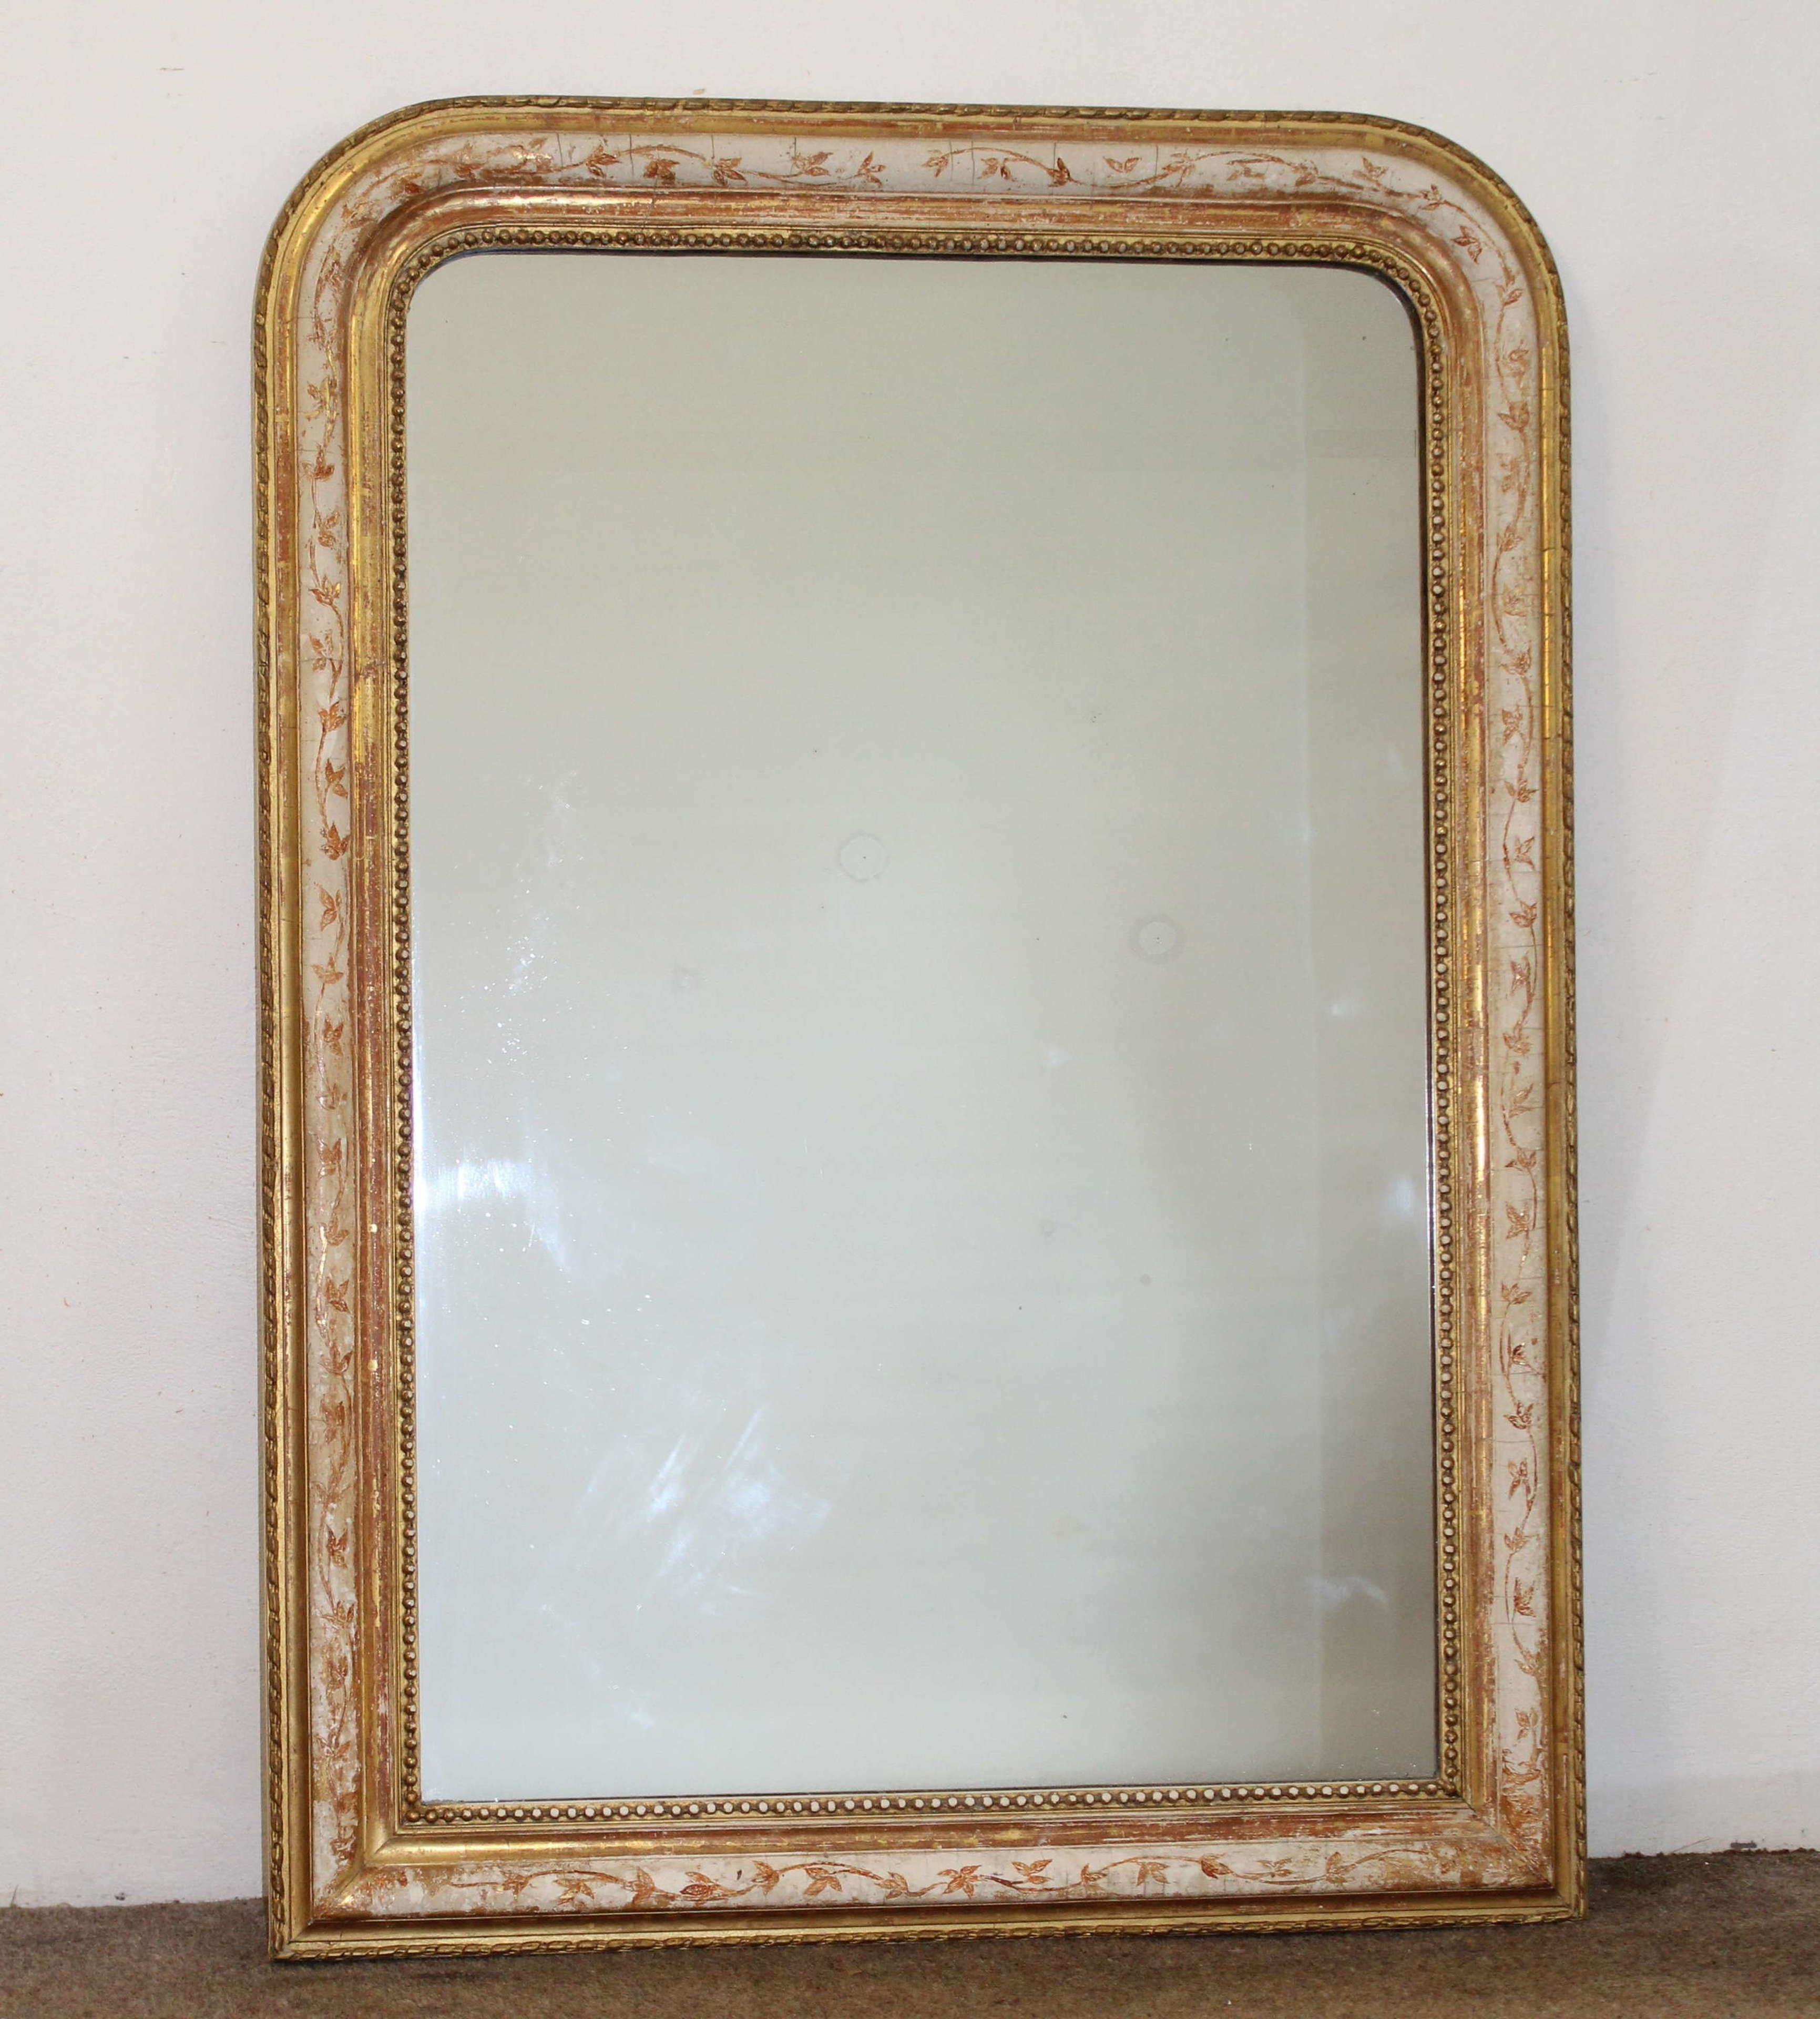 Antique French archtop with cream, gold and terracotta frame